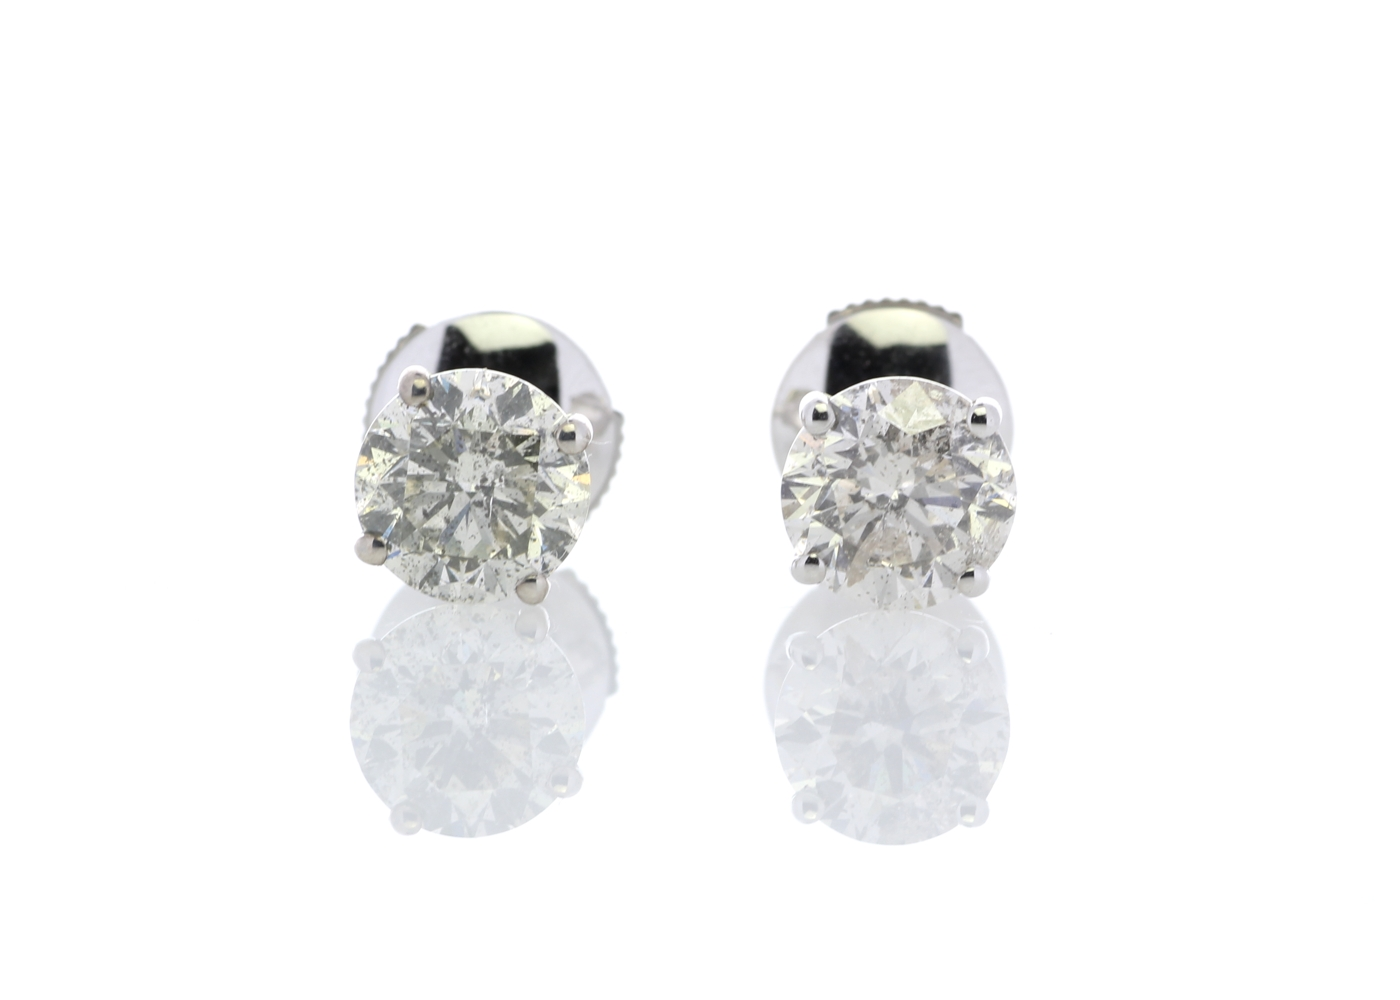 Lot 38 - 18ct White Gold Claw Set Diamond Earrings 2.34 Carats